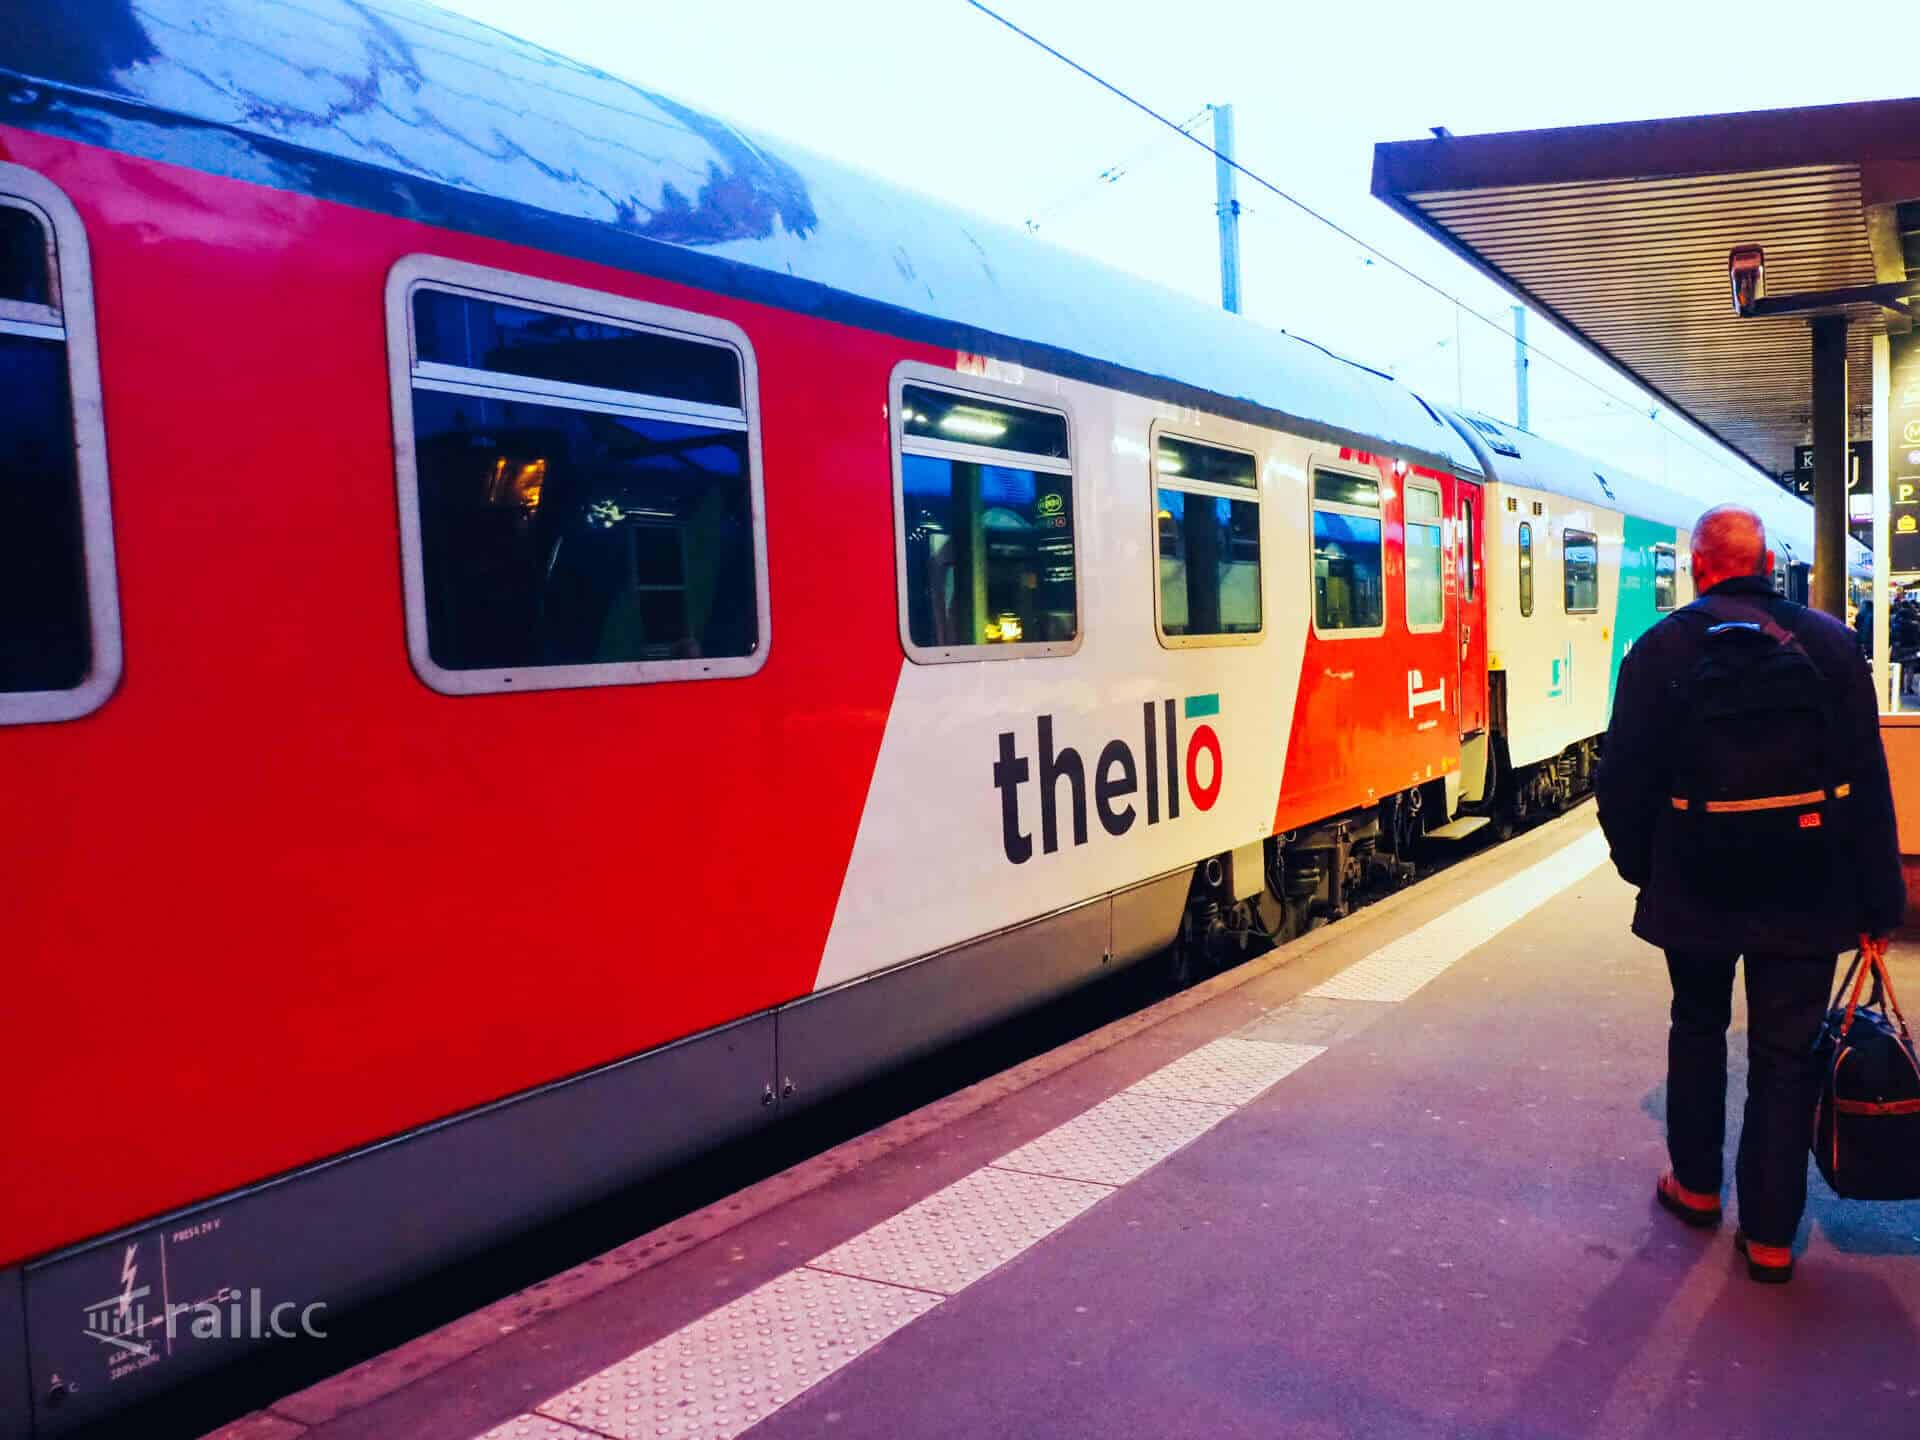 From France to Italy by night train. The Thello train from Paris and Dijon to Milan and Venice.